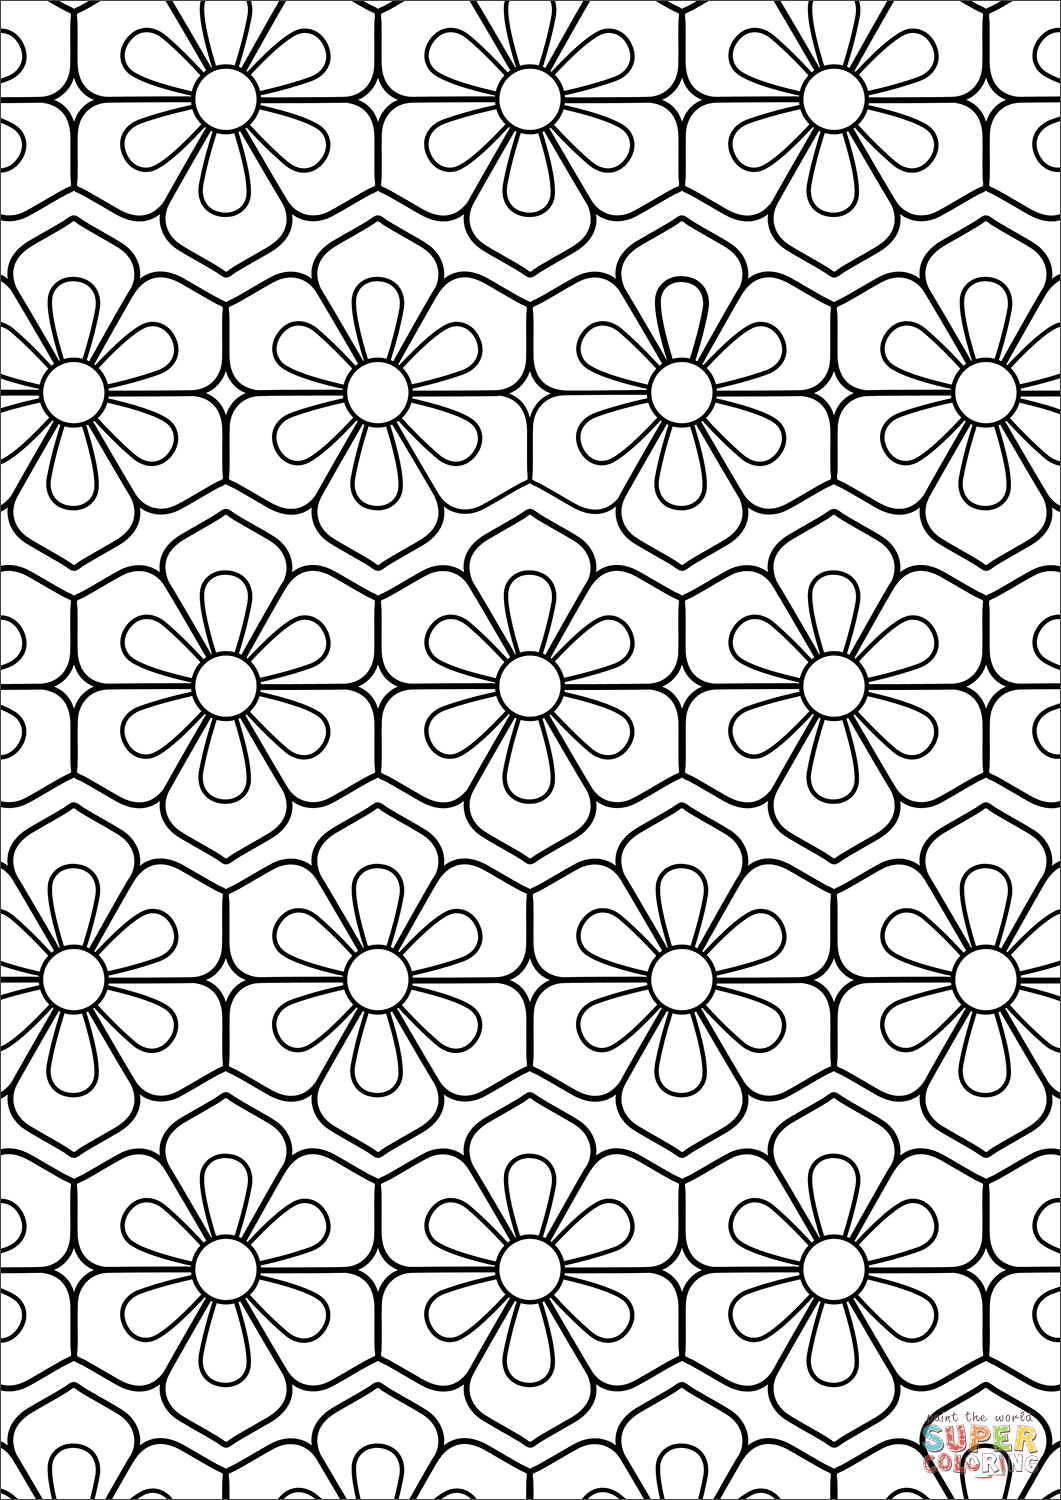 coloring pattern pages beautiful doodle floral pattern adult coloring pages printable pages pattern coloring